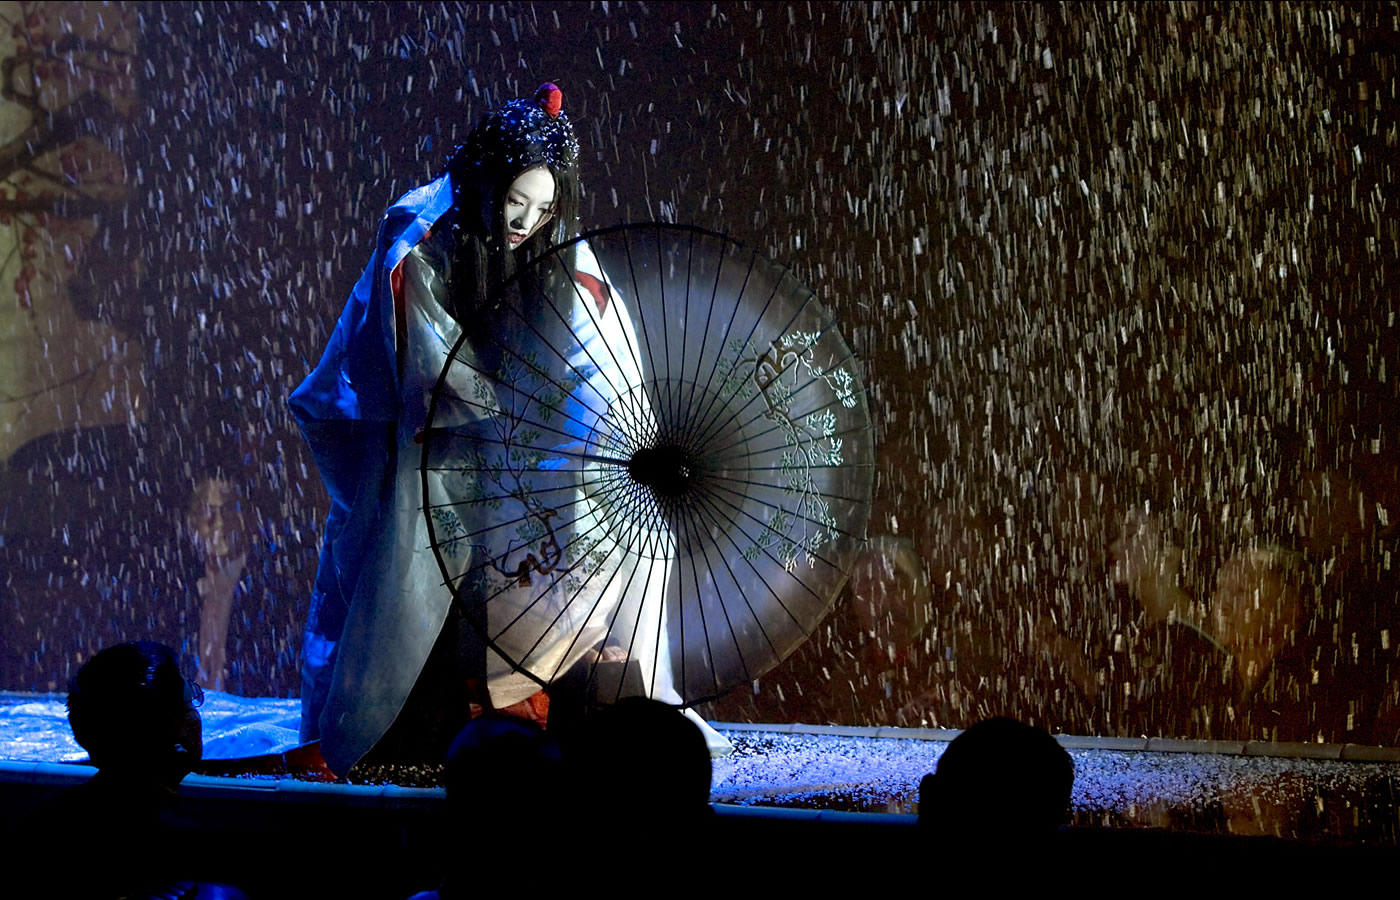 Memoirs Of A Geisha Computer Wallpapers Desktop Backgrounds 1400x900